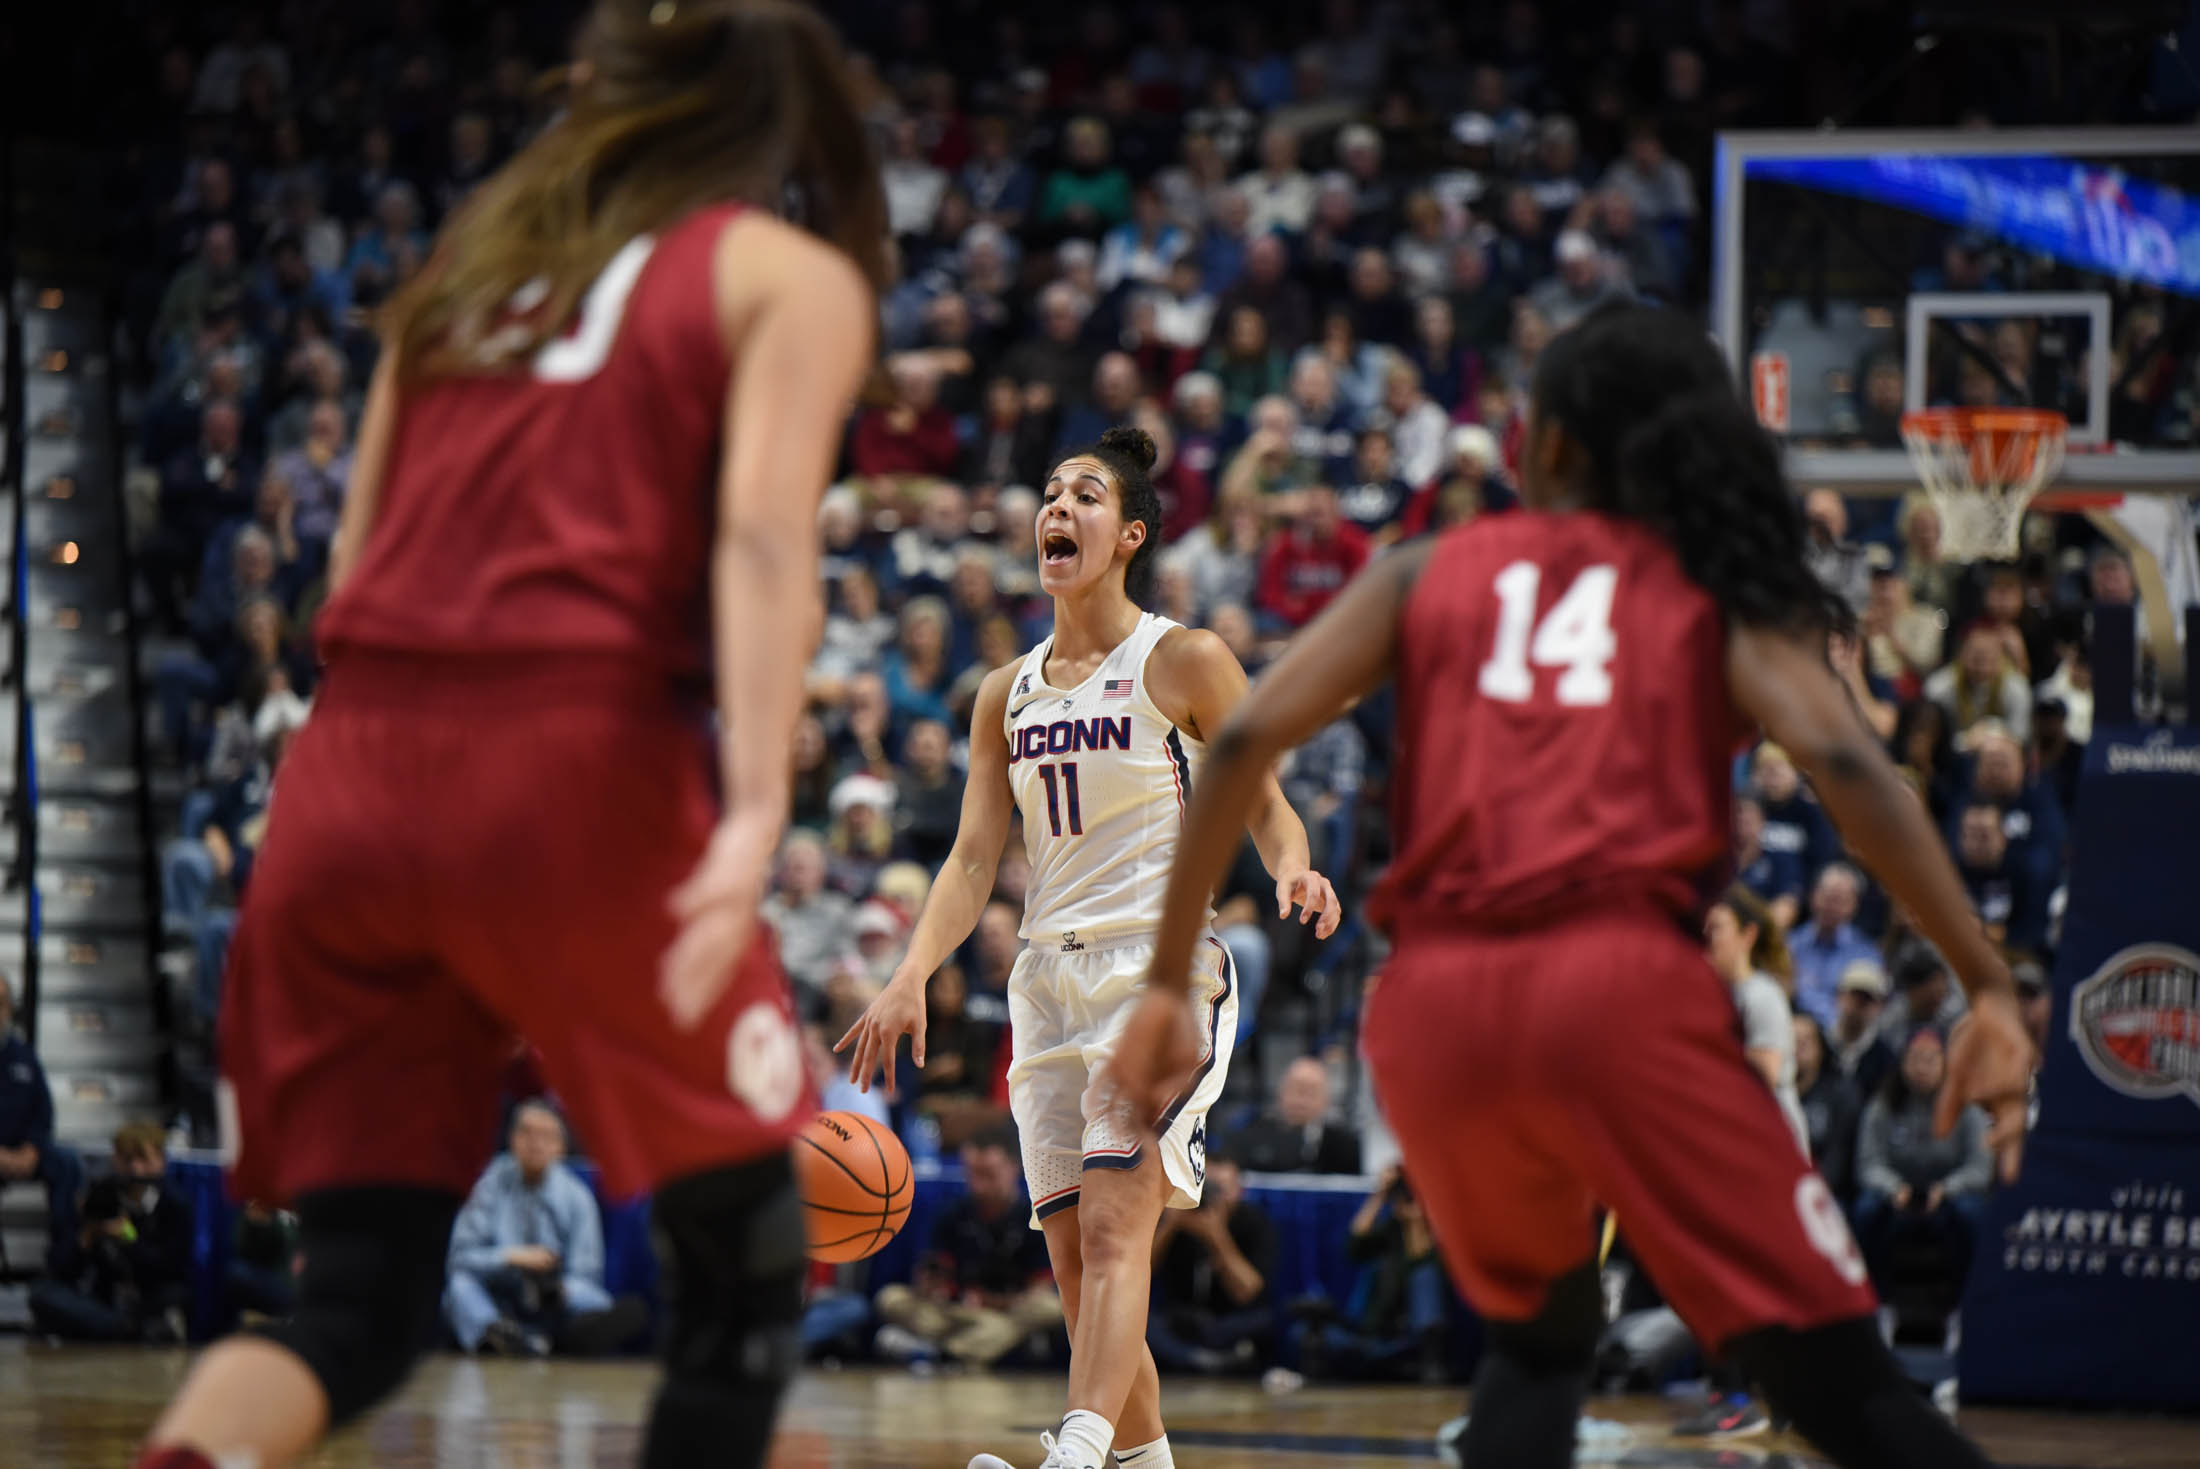 Kia Nurse calls out a play to her teammates during the second half of the game. (Charlotte Lao/The Daily Campus)